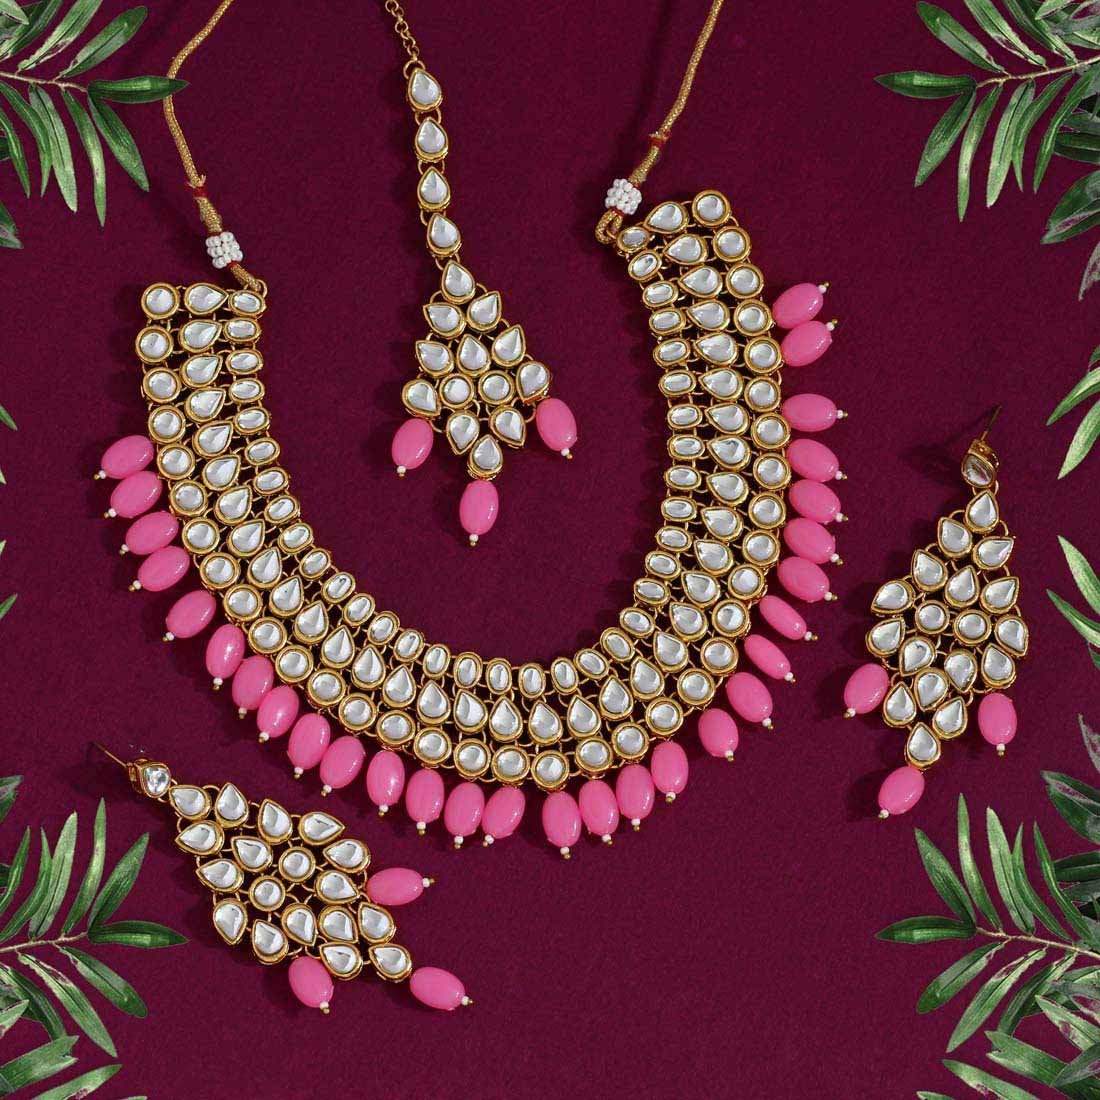 kundan Necklace set/chokar kundan haar/designer polki kundan necklace/pearl necklace/Indian jewelry/ bridal necklace set/artificial jewelry